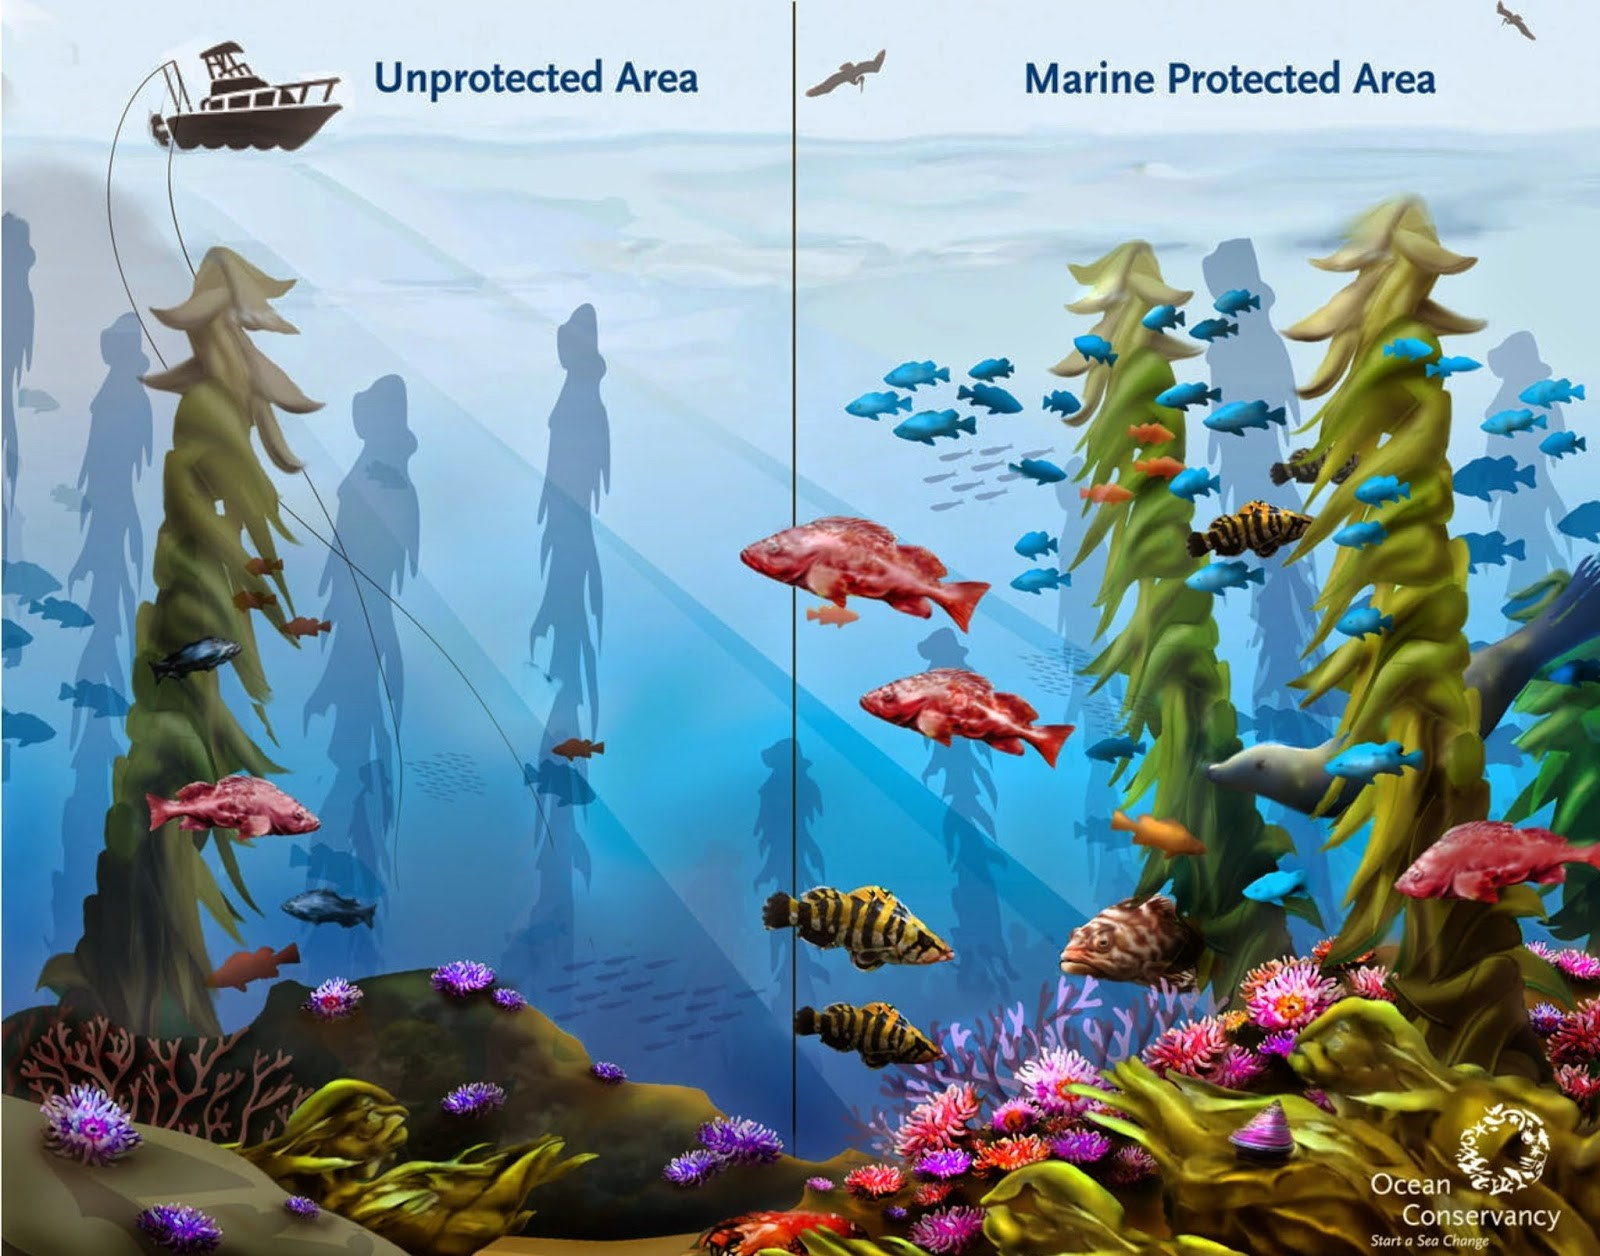 Why marine protected areas are important